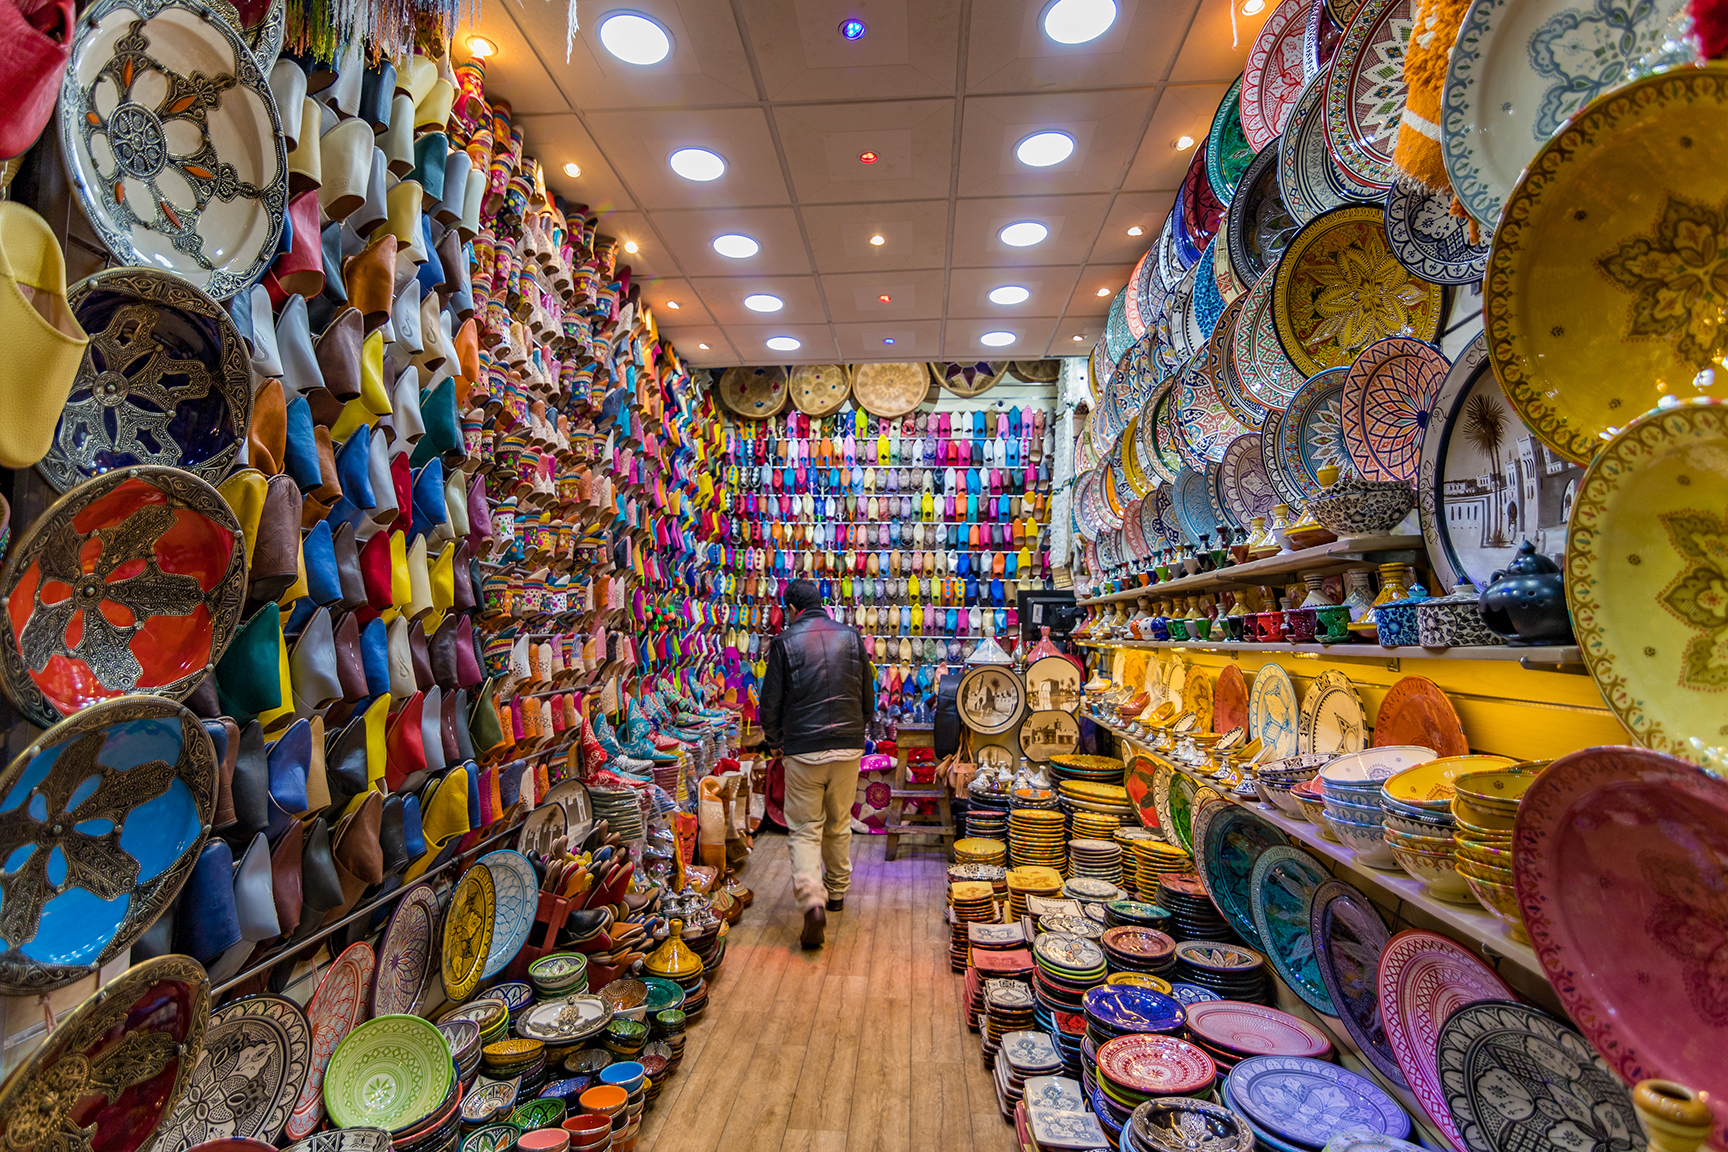 The colorful markets of Marrakesh.